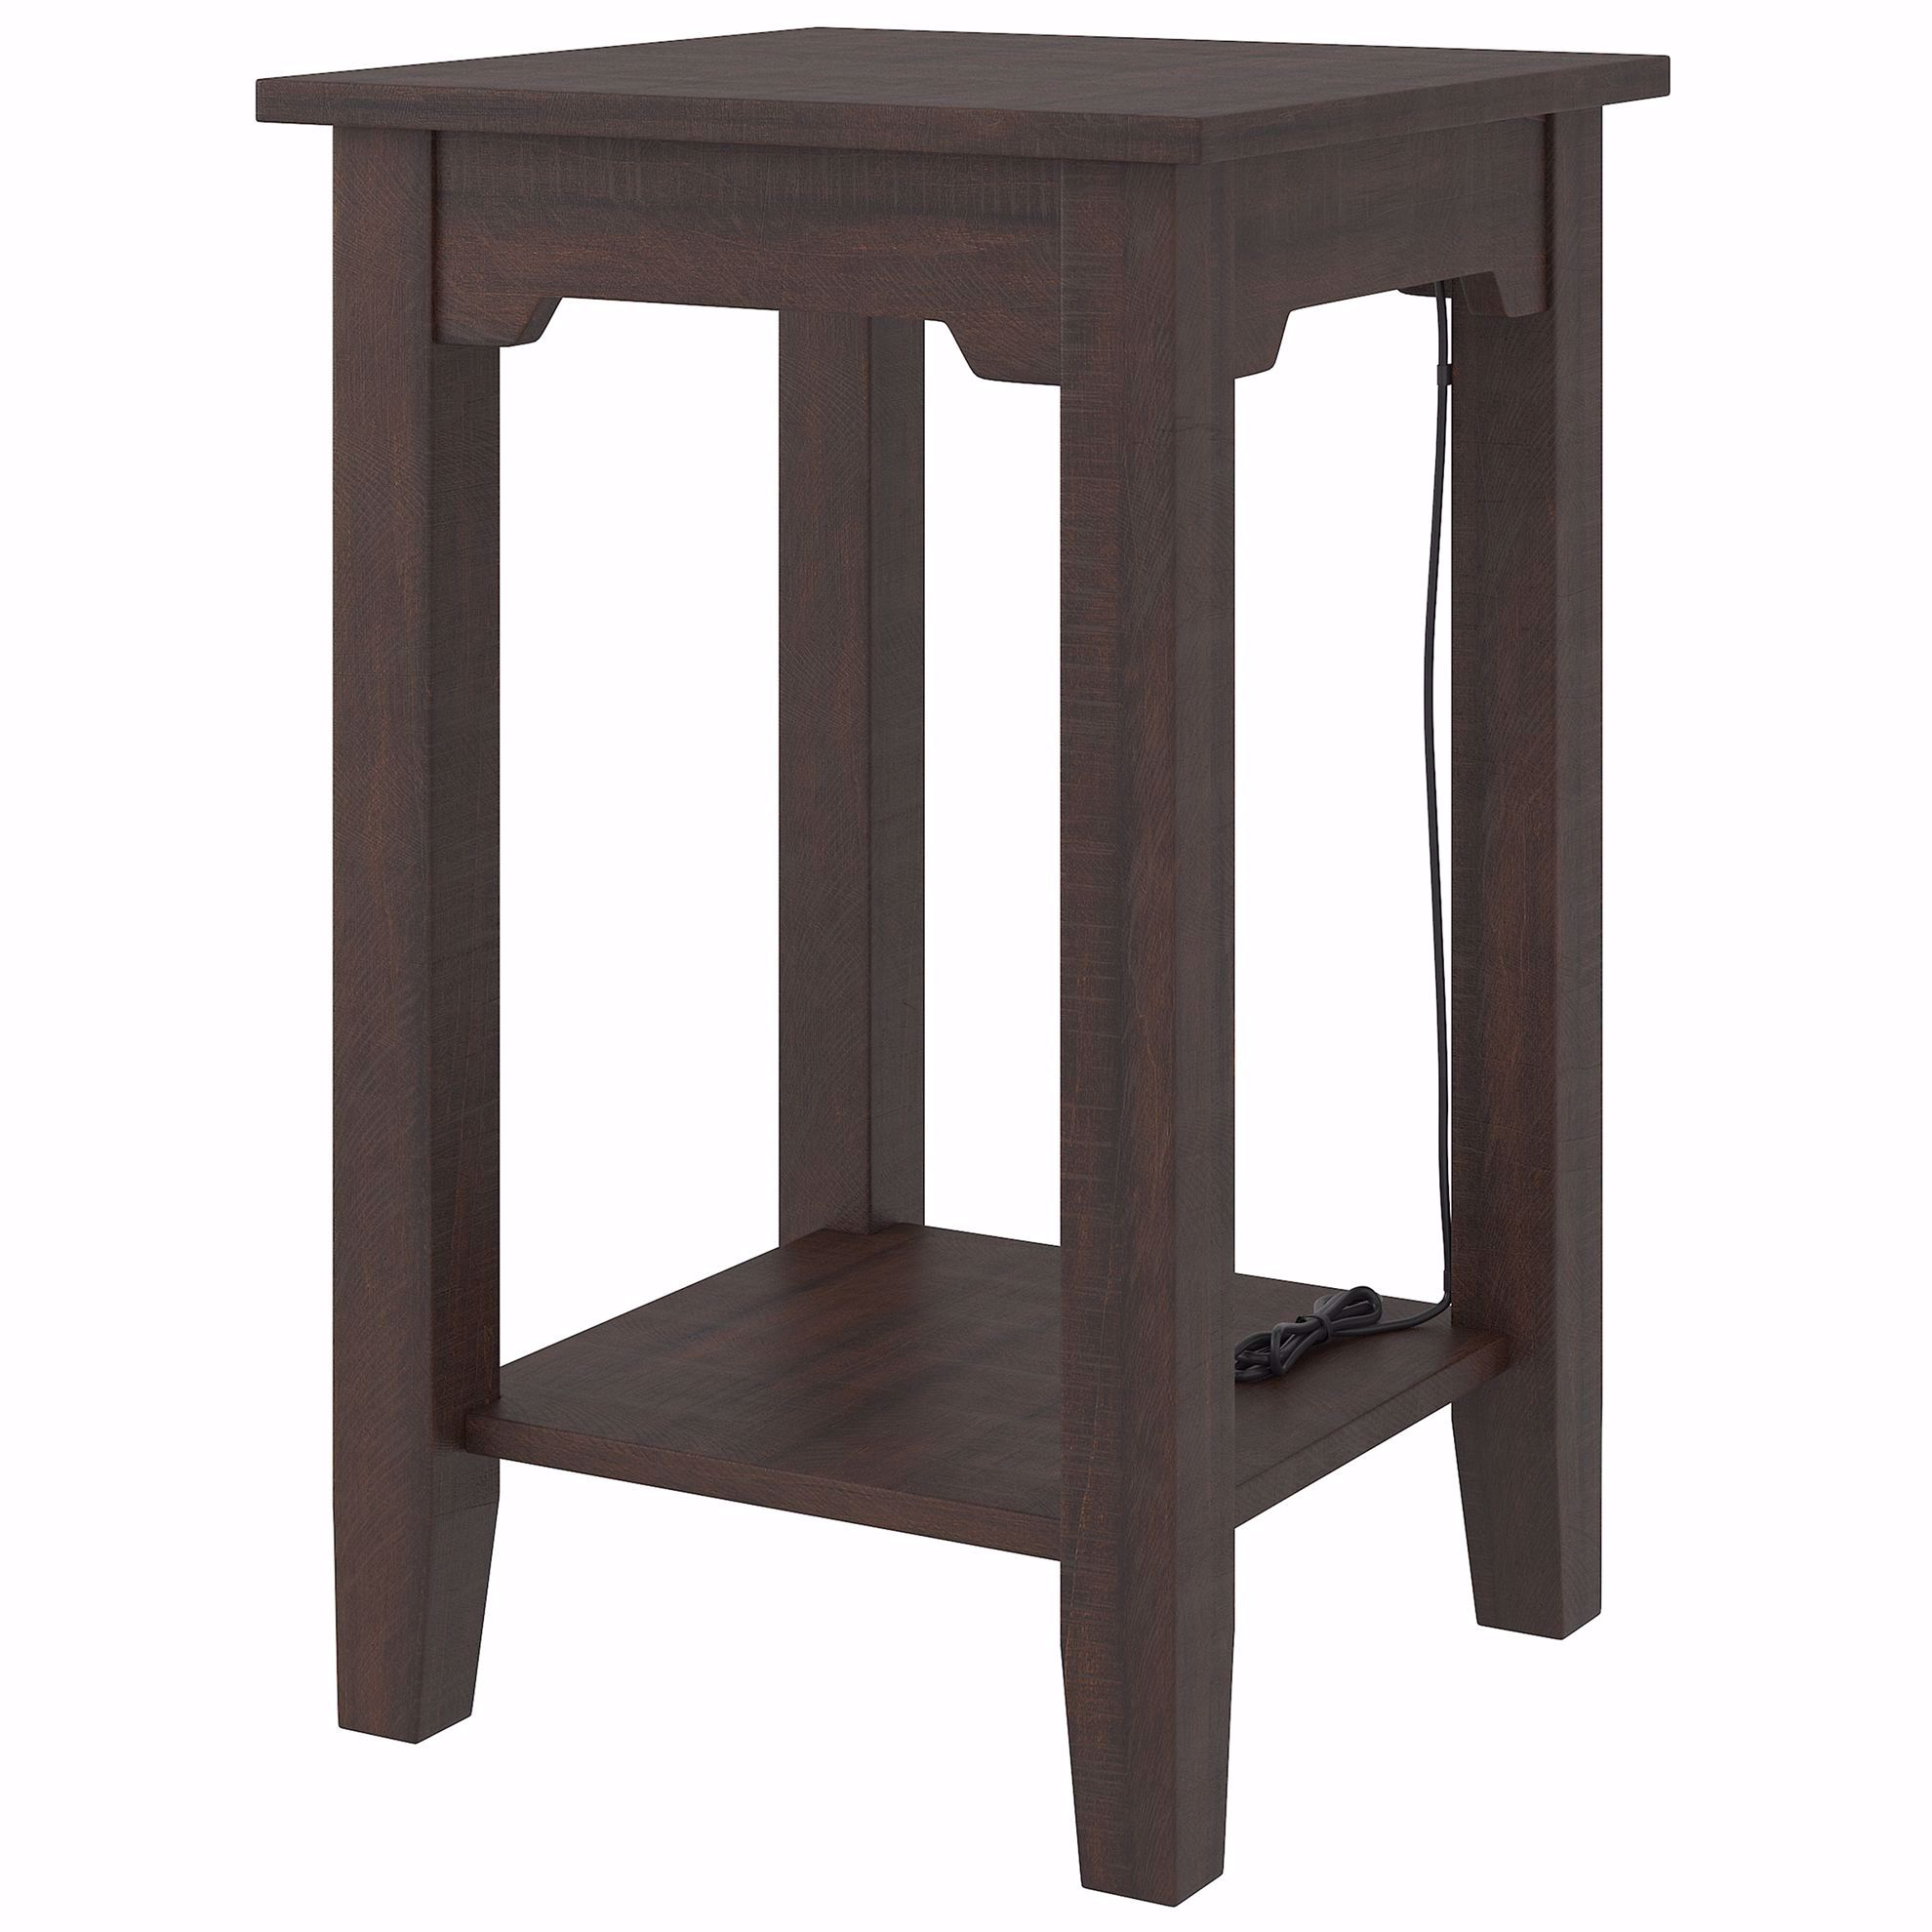 Picture of Camiburg Brown Chairside Table